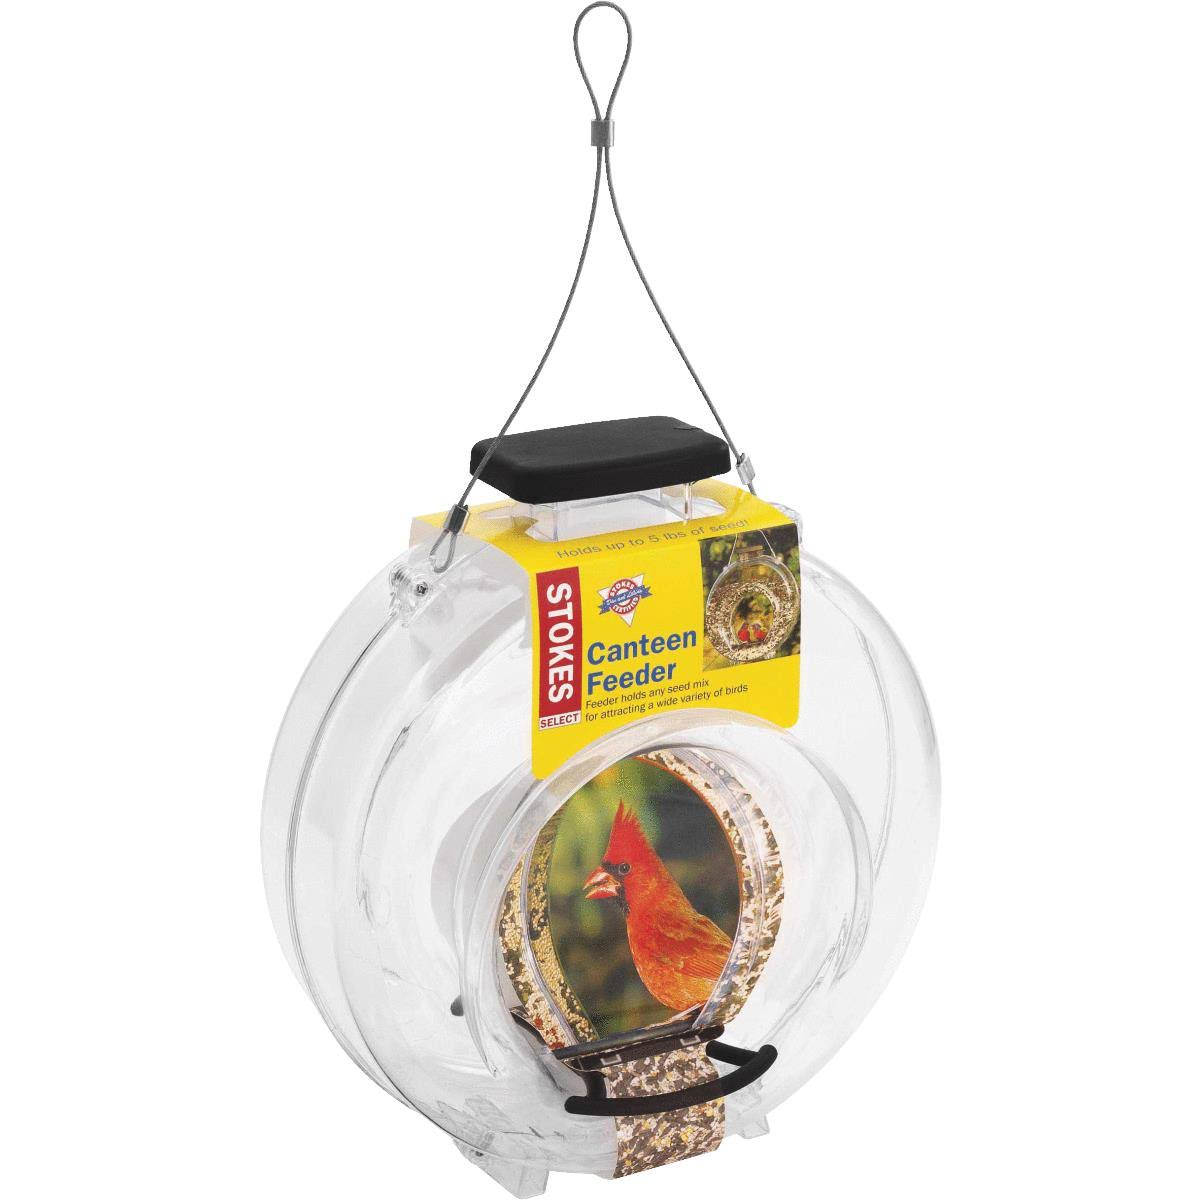 Stokes Select Canteen Bird Feeder - 3.5qt